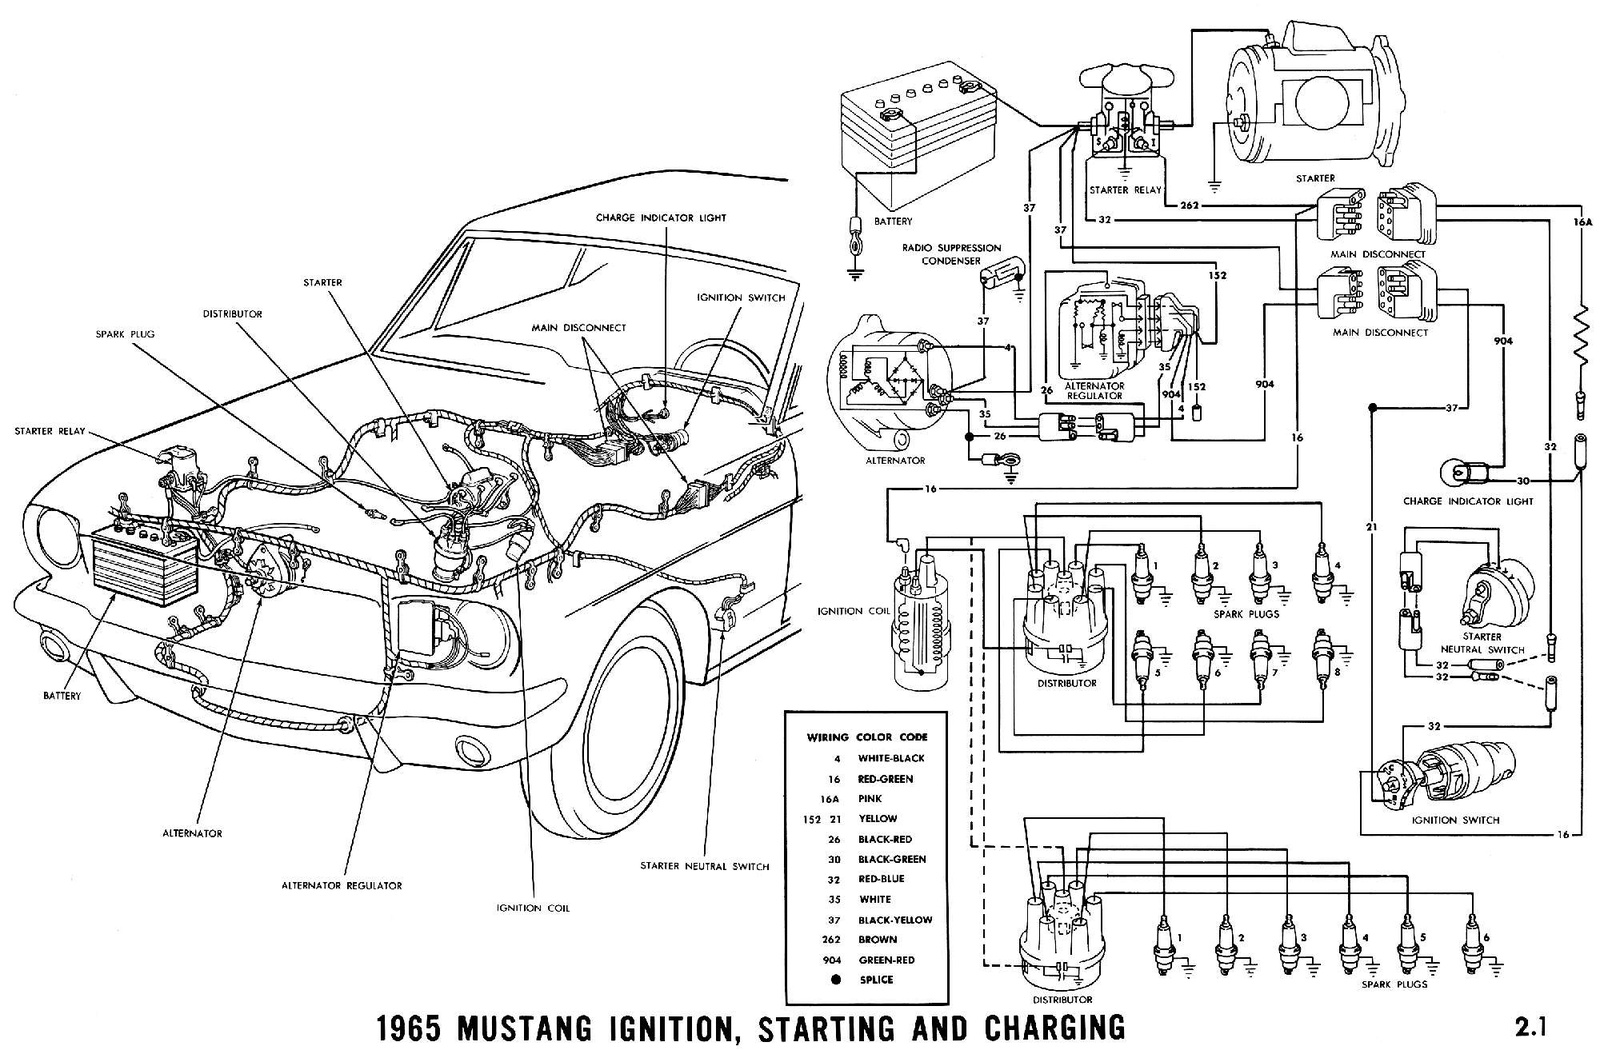 1965 Chevy Truck Fuel Pump Wiring Library Ford Diagram Mustang Ignition Free Vehicle Diagrams U2022 Rh Generalinfo Co 1989